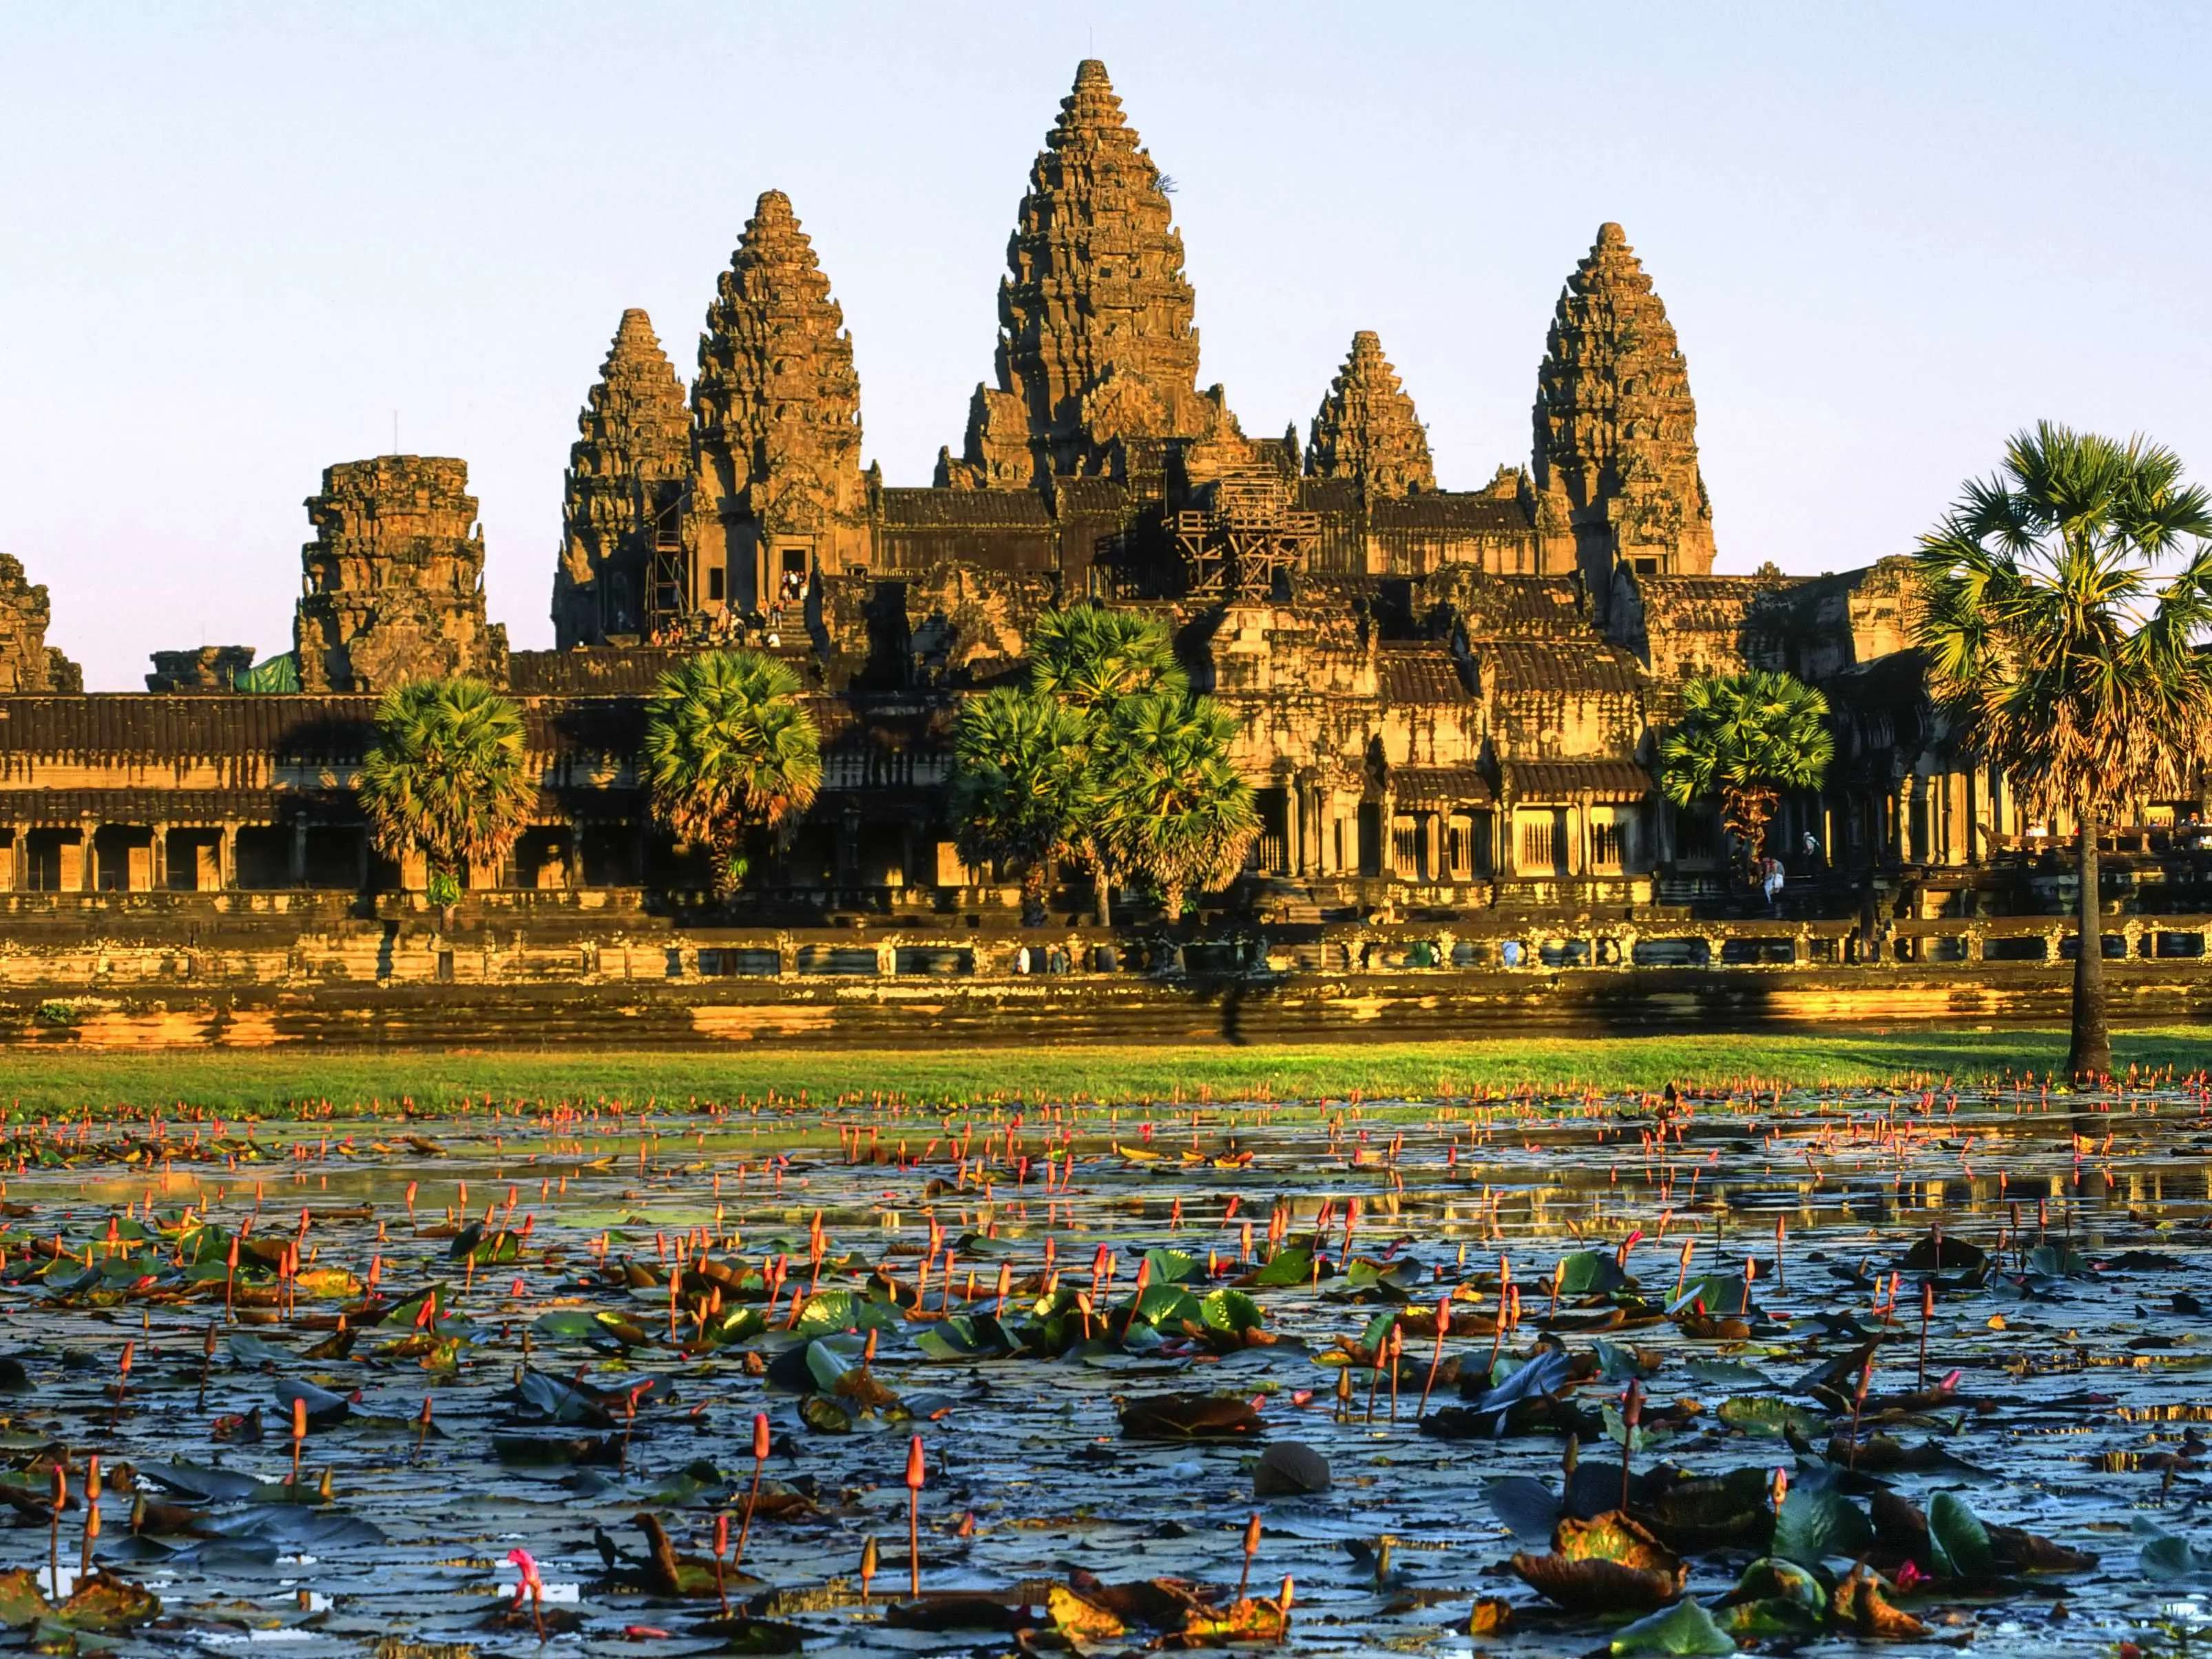 Clamber over the ruins of Angkor Wat in Cambodia.